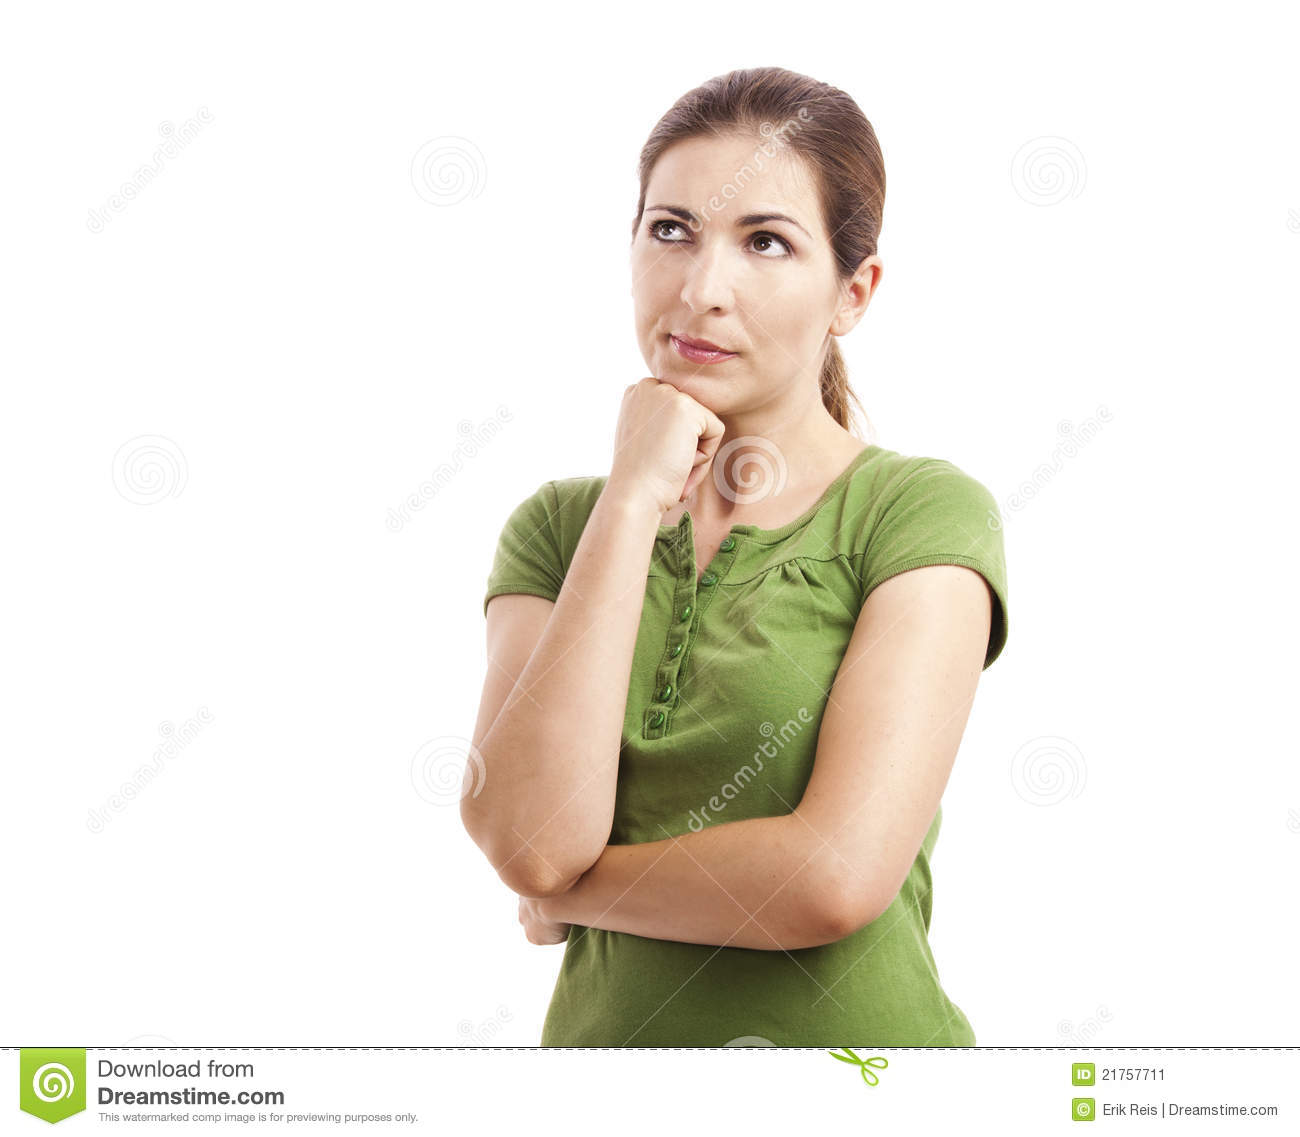 Worried Stock Image - Image: 21757711